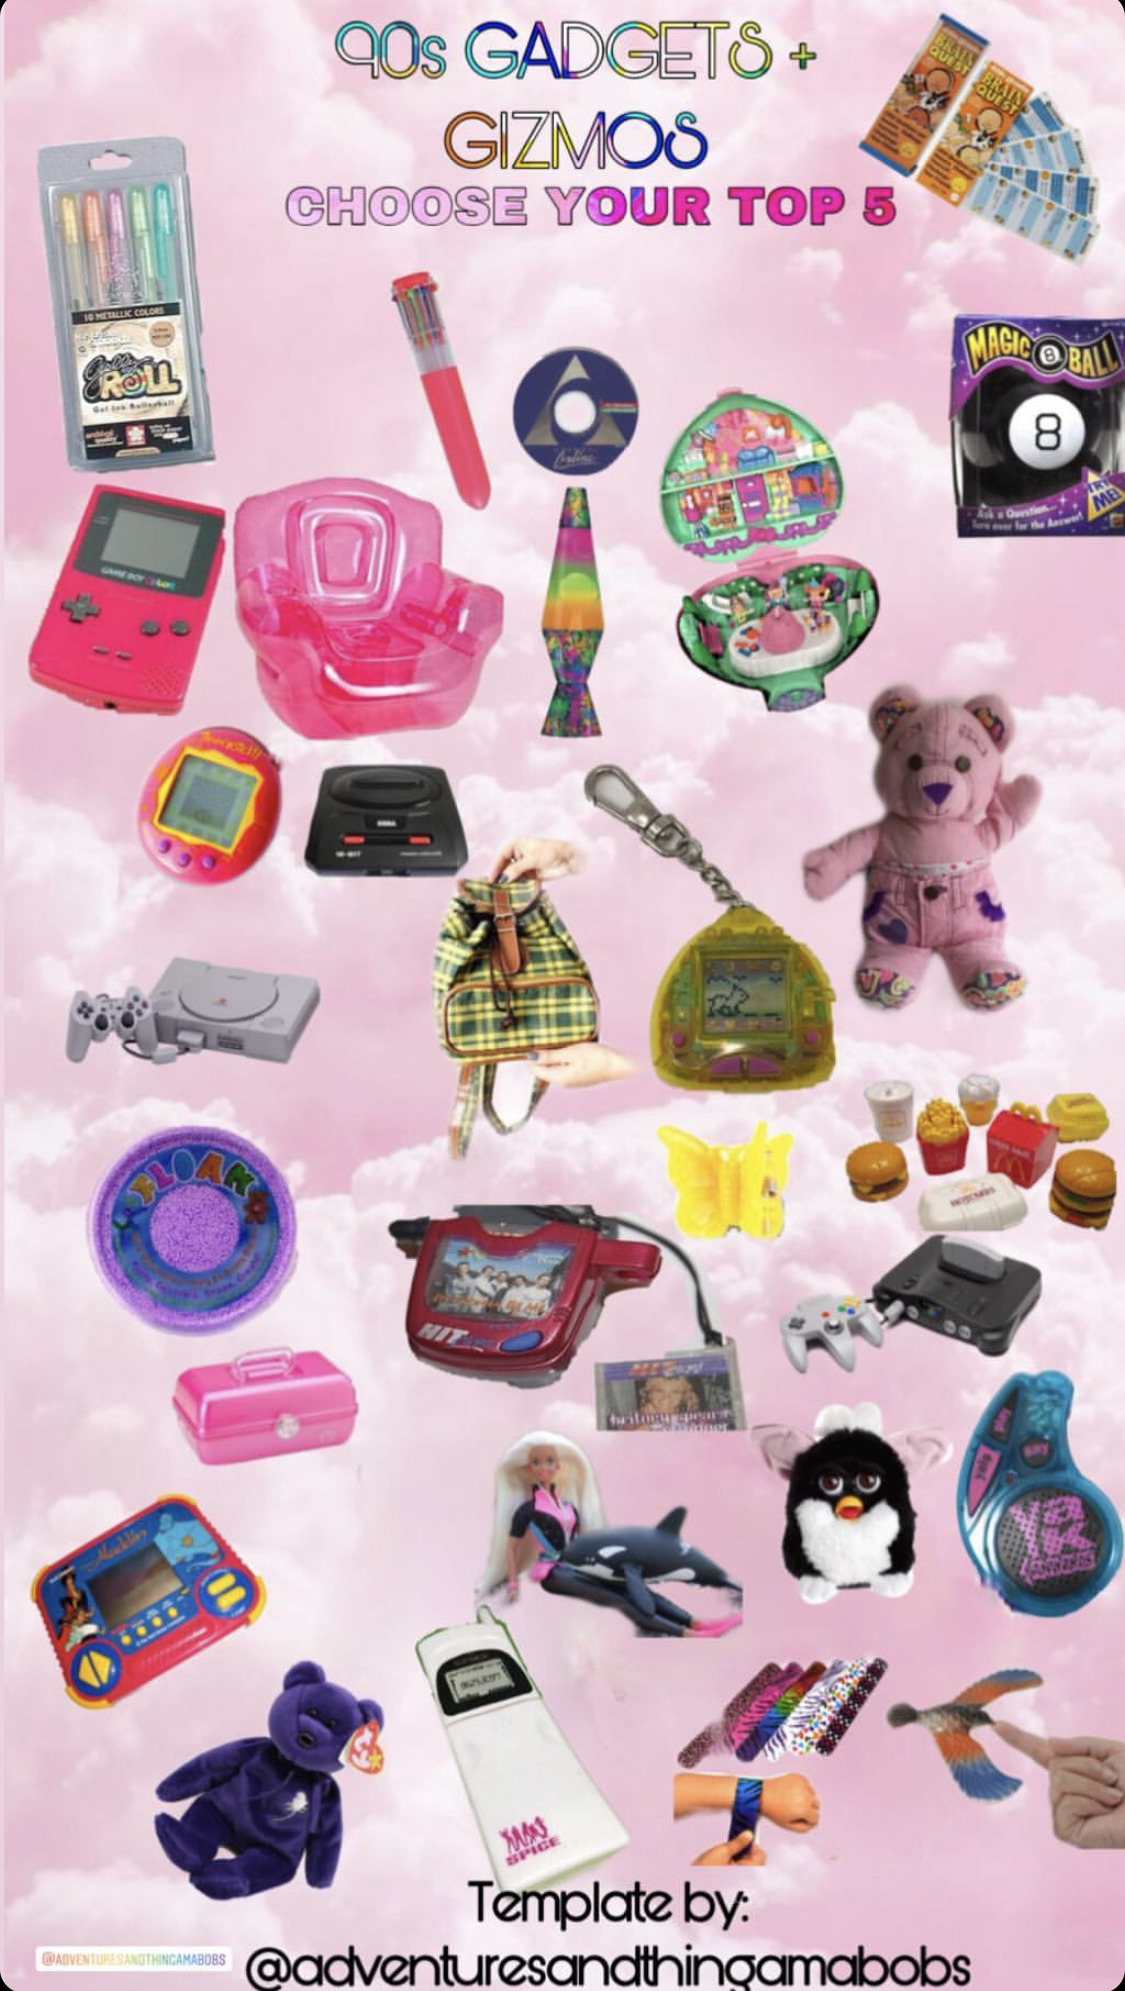 90s toys